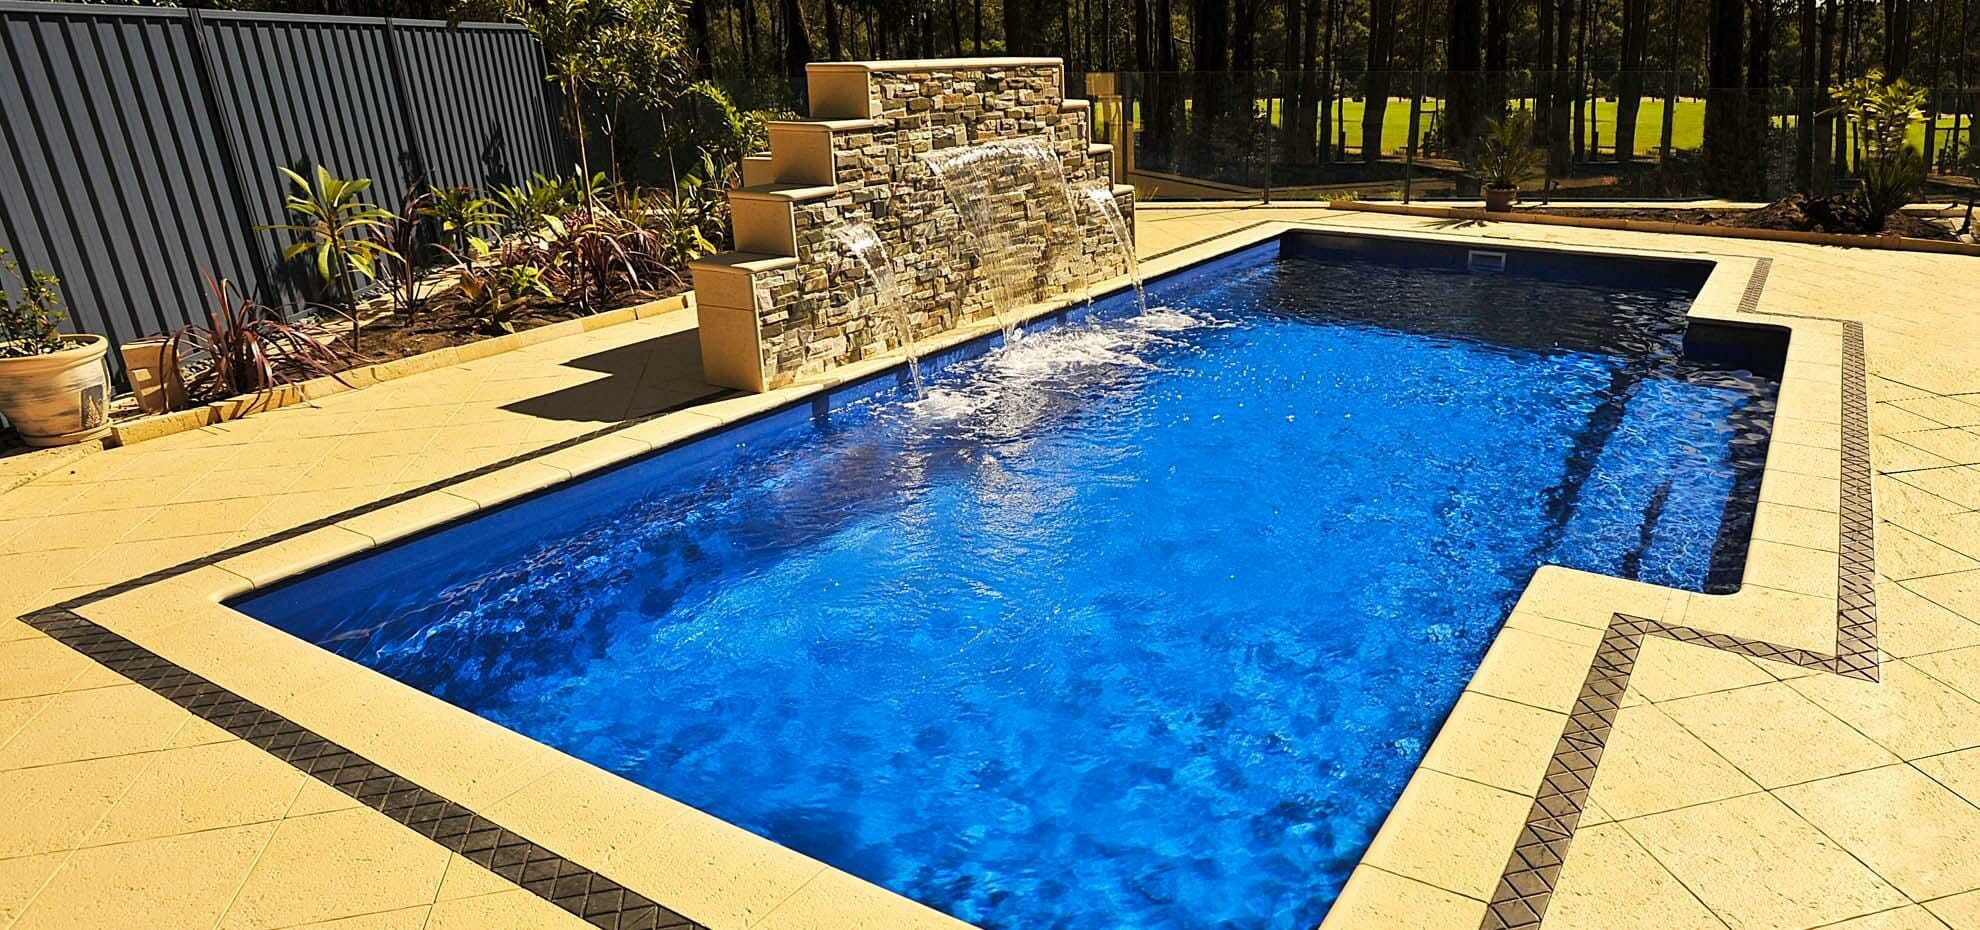 Elegance fibreglass pool design with stone water feature and coping by Leisure Pools